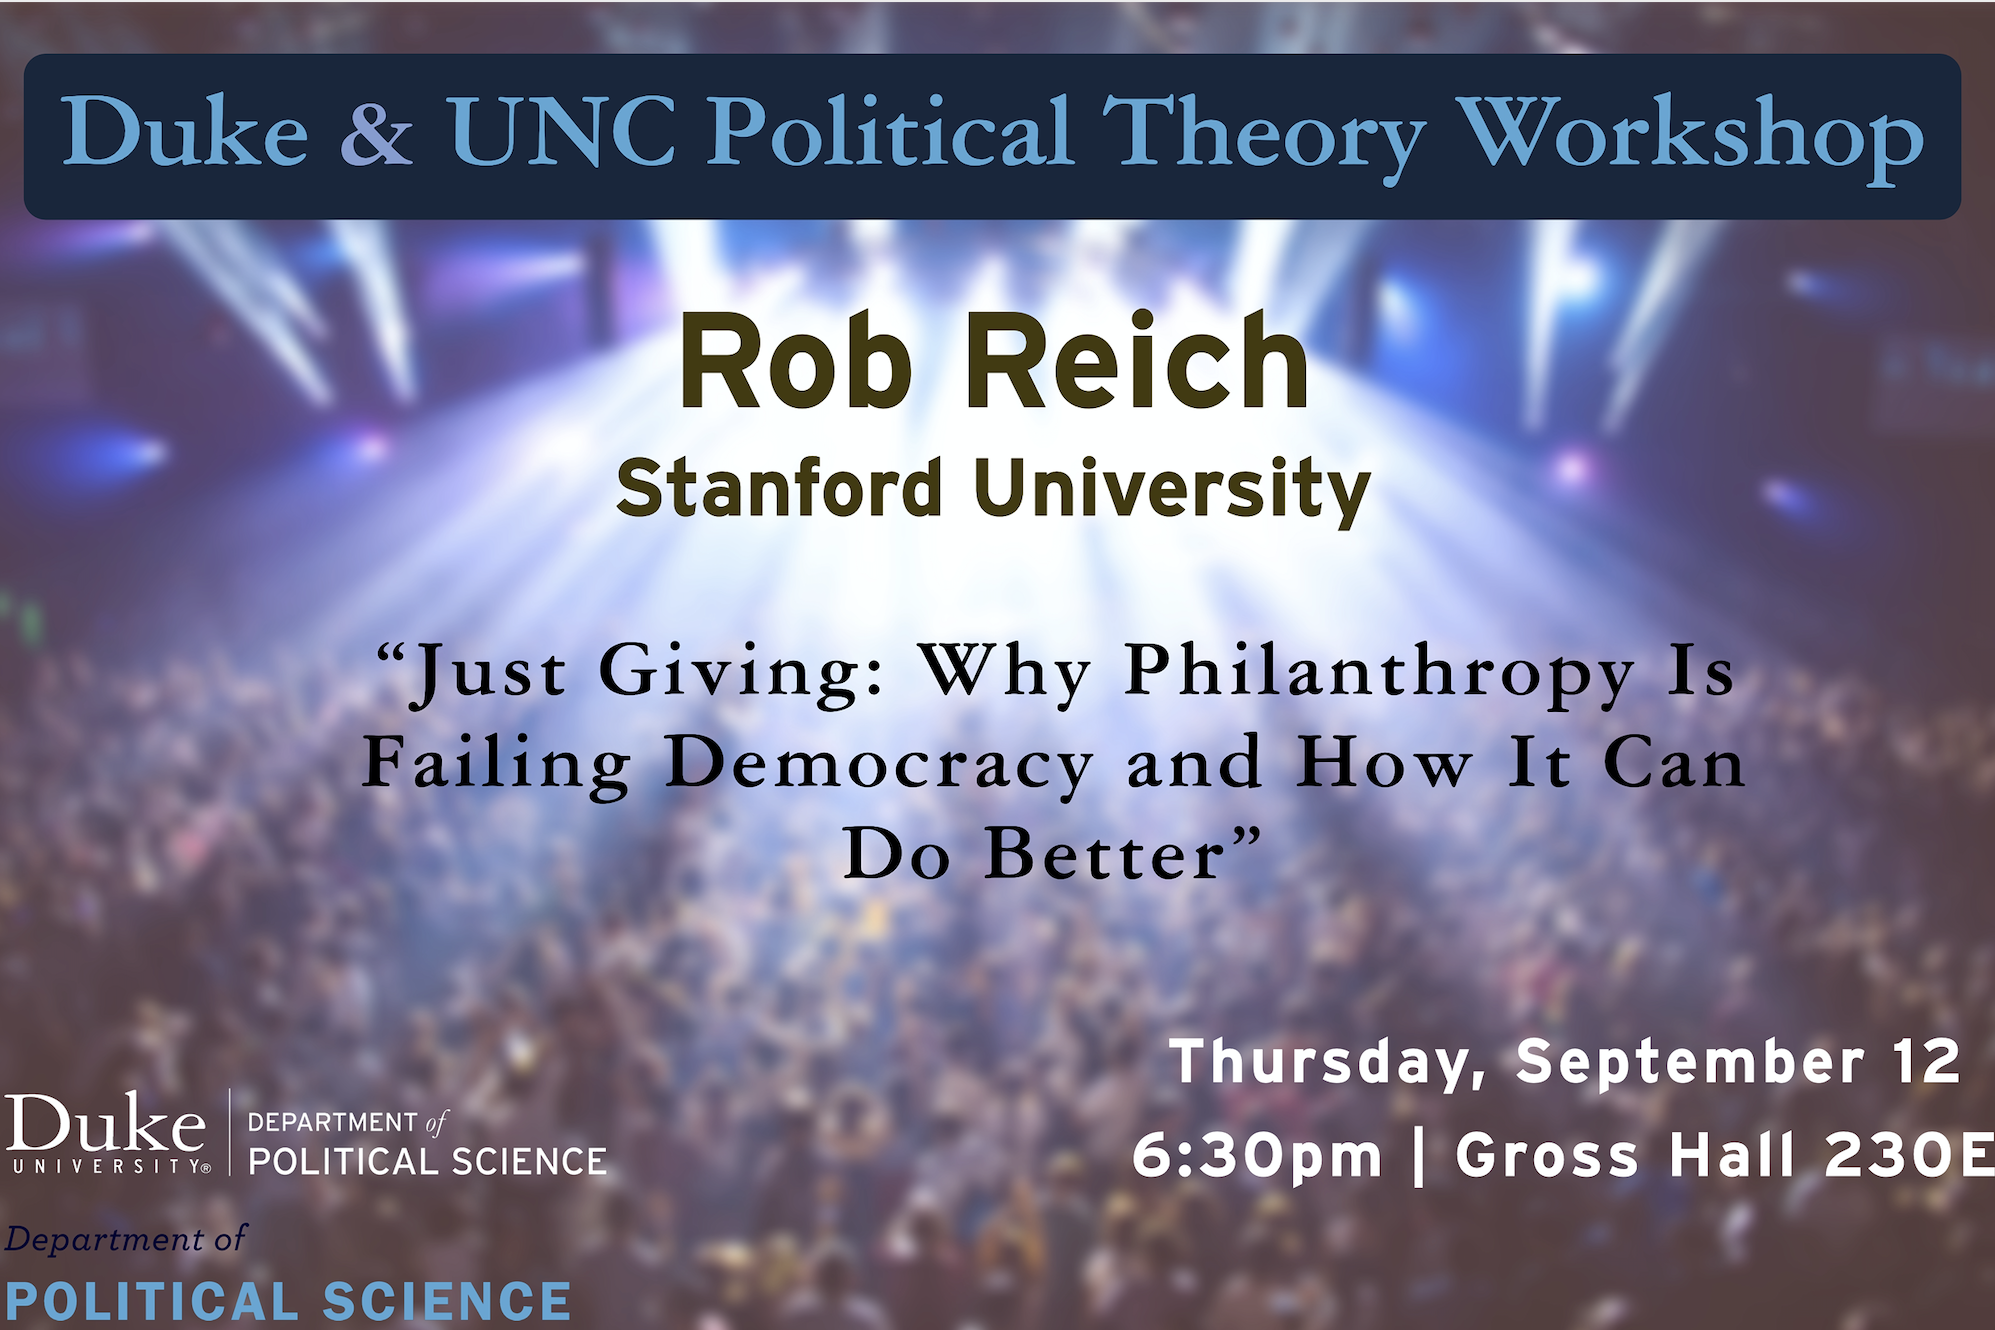 Flyer for Rob Reich event